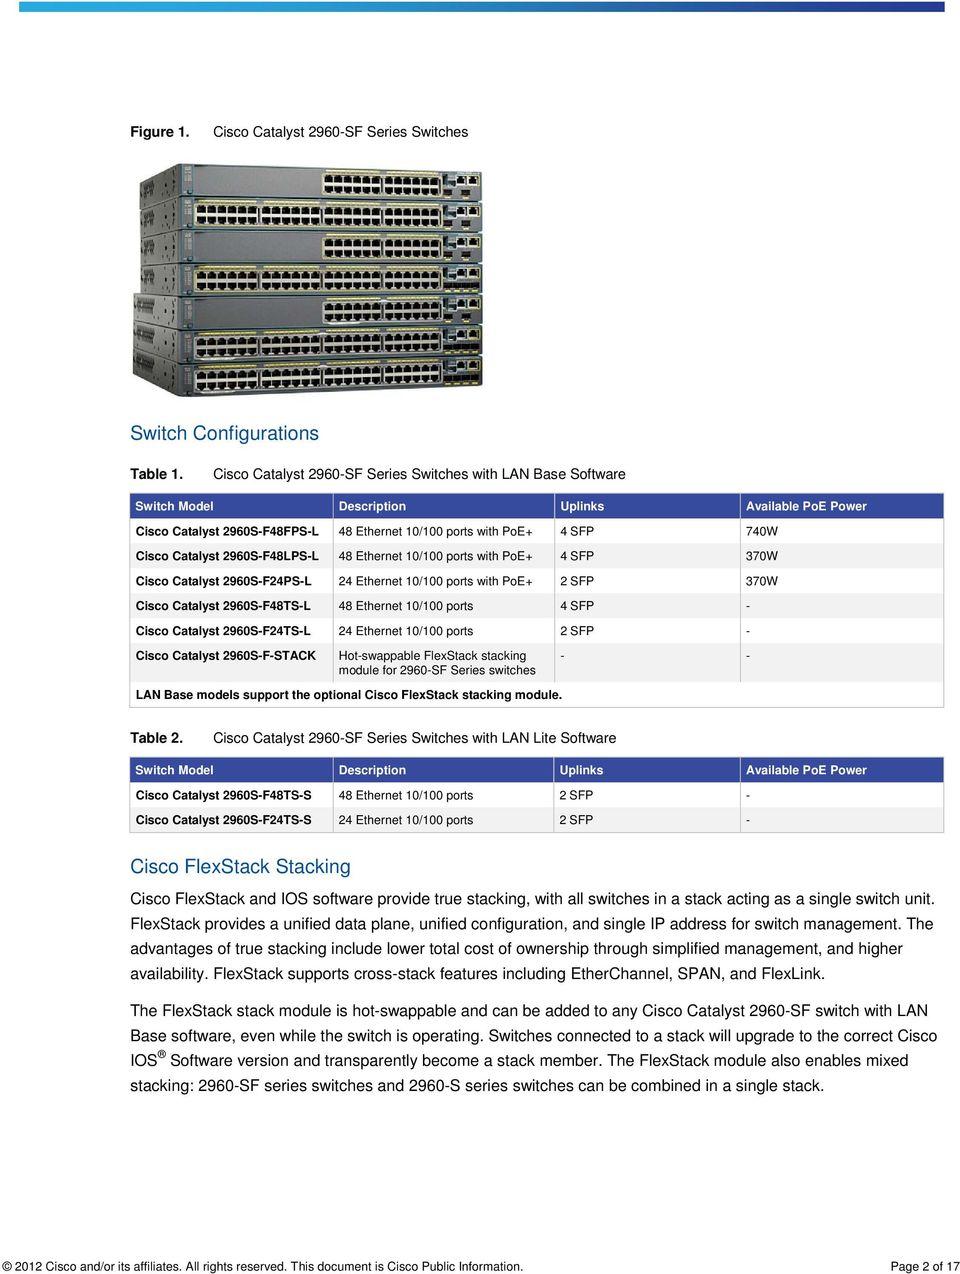 Cisco Catalyst 2960-SF Series Switches - PDF